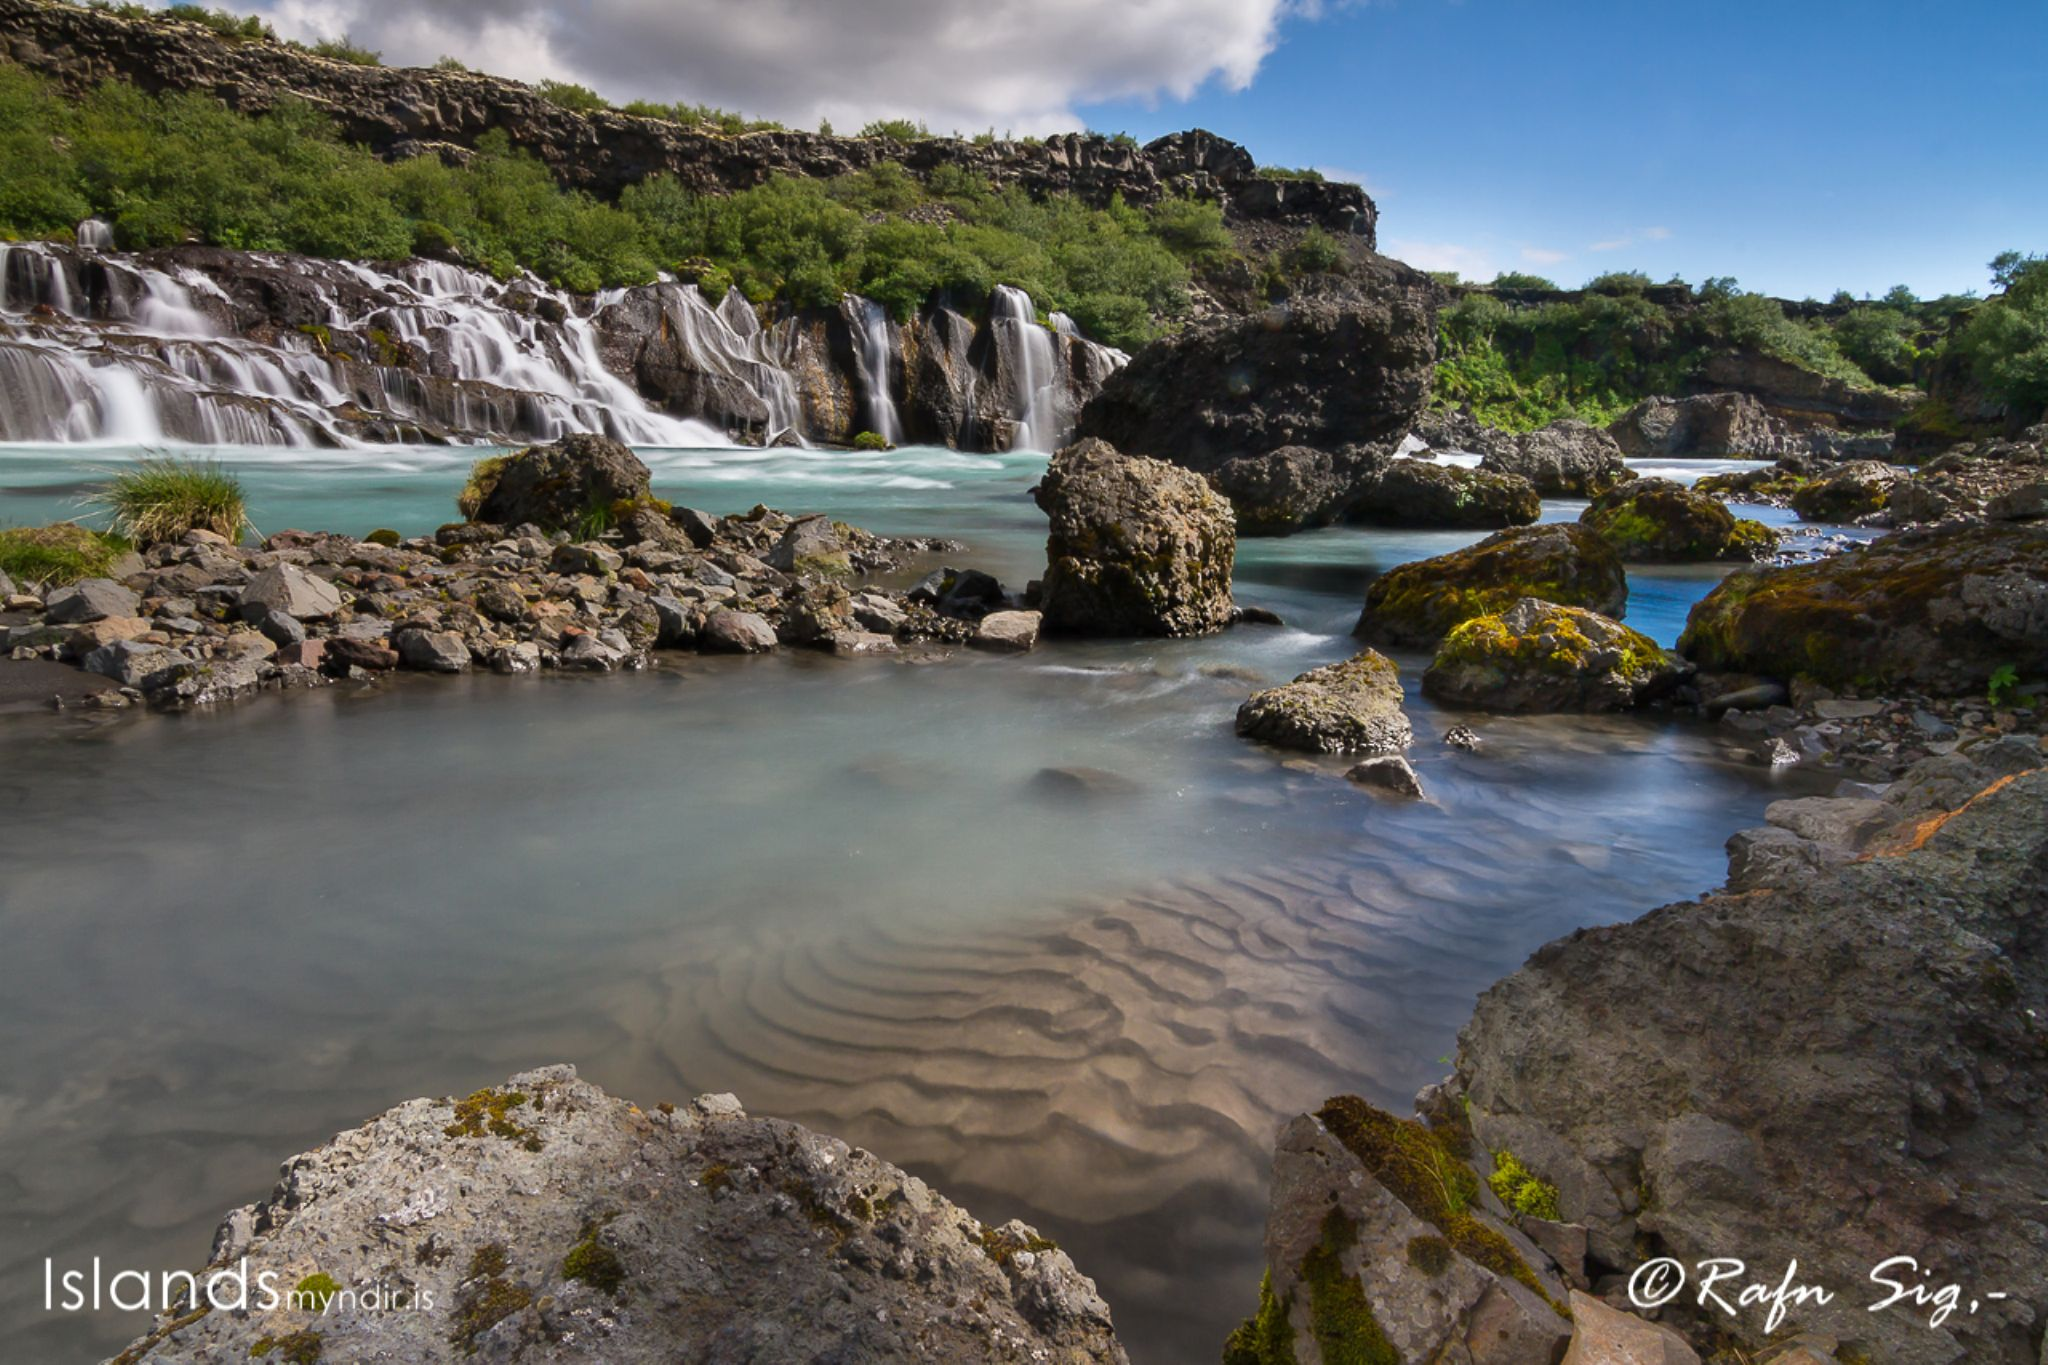 At the riverbank - #Iceland - / - Adventure in every footstep - www.islandsmyndir.is  by Rafn Sig,-  @ Discover Wild Iceland.com